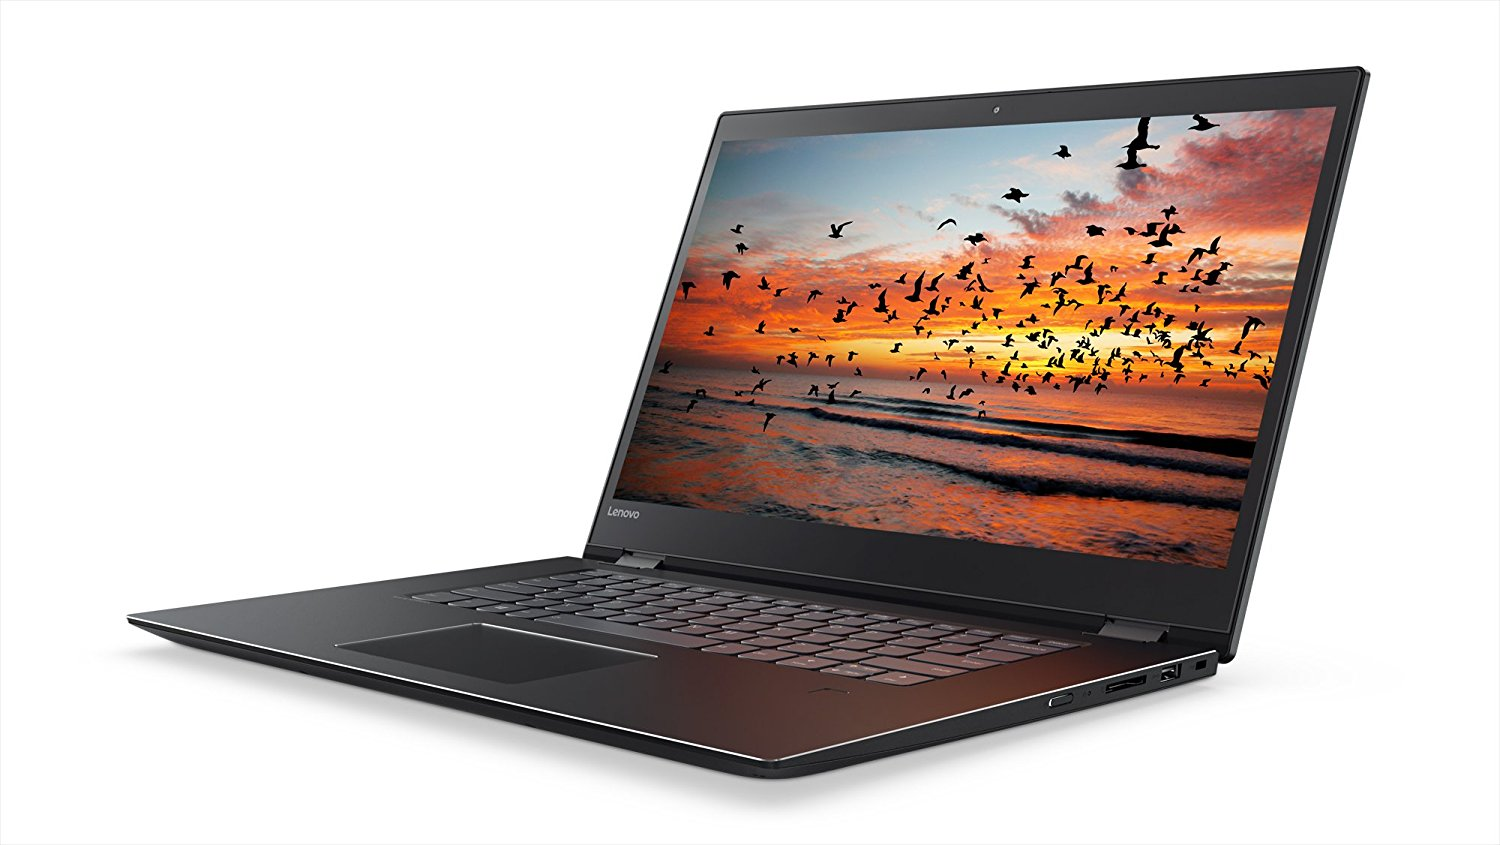 Lenovo Flex 5 2-in-1 Laptop